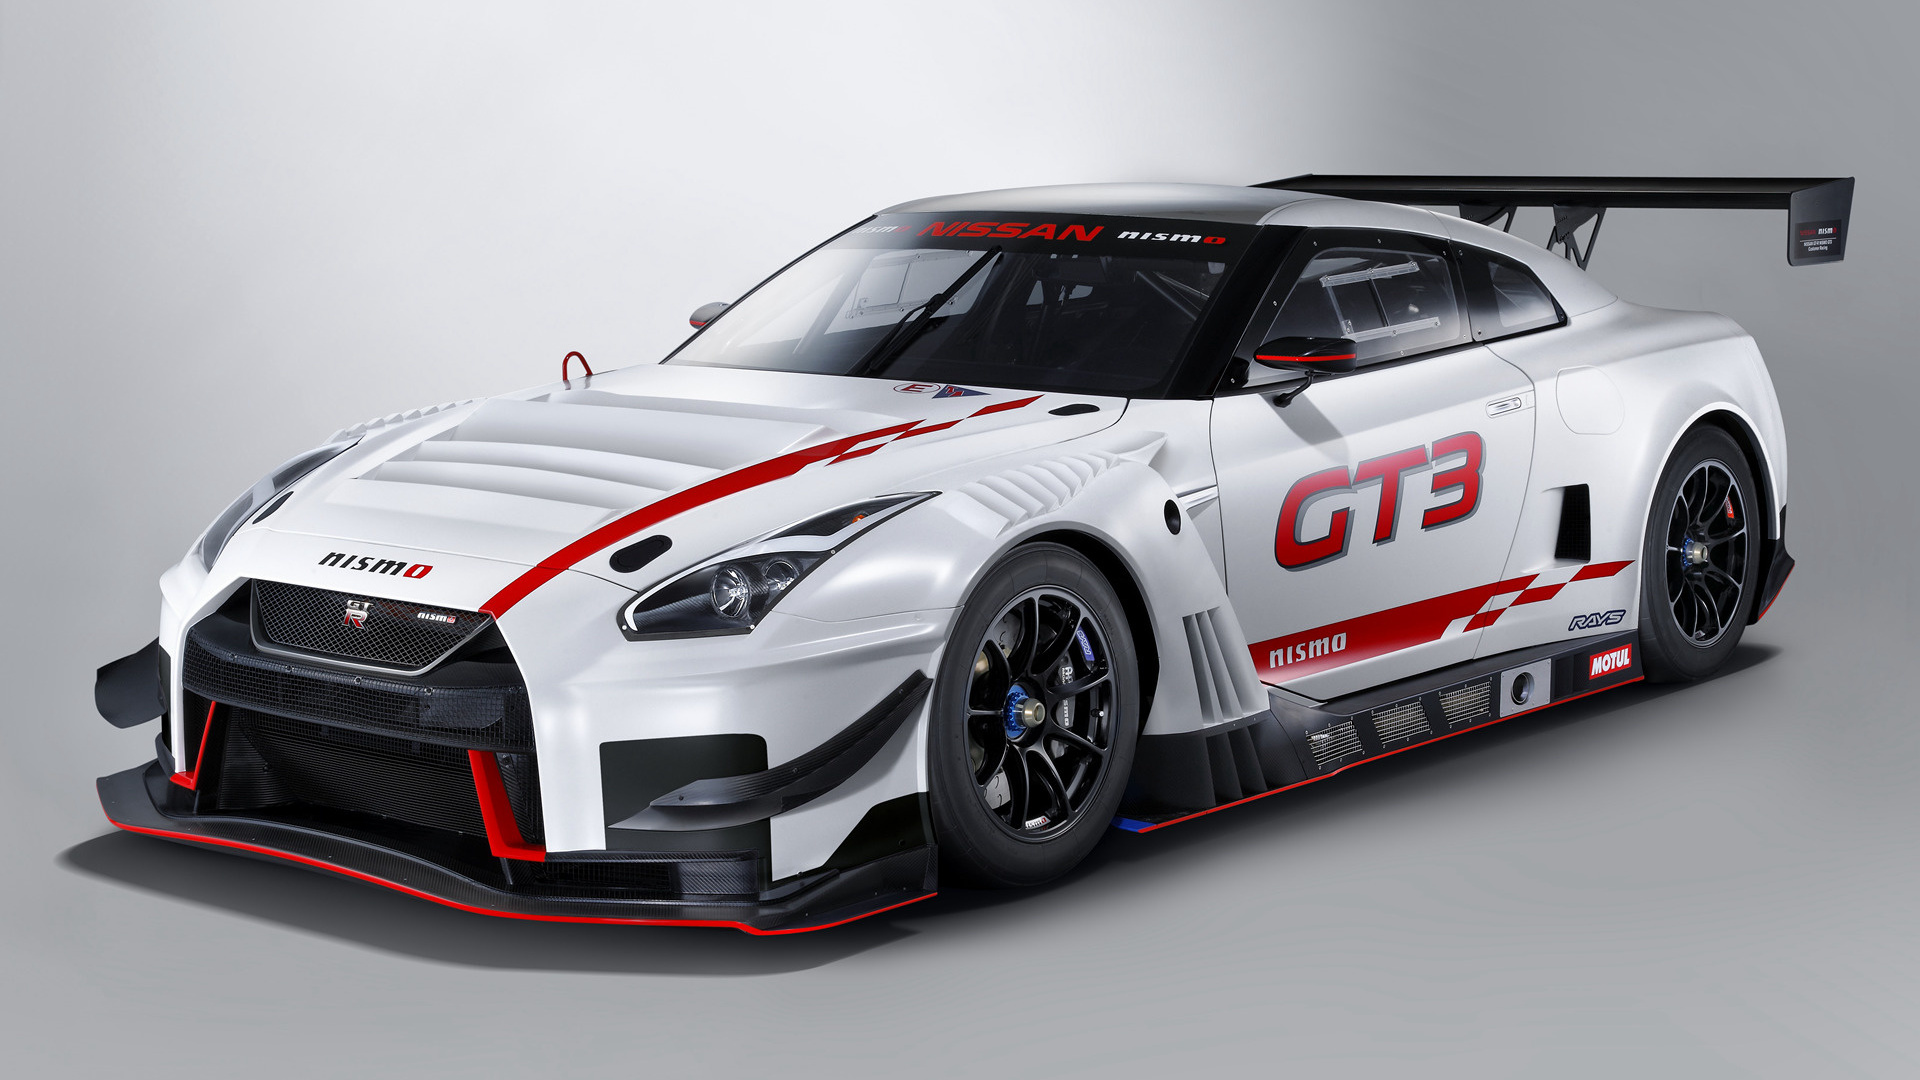 2017 Nissan Gt R Nismo Wallpapers Hd Images: 2019 Nissan GT-R Nismo GT3